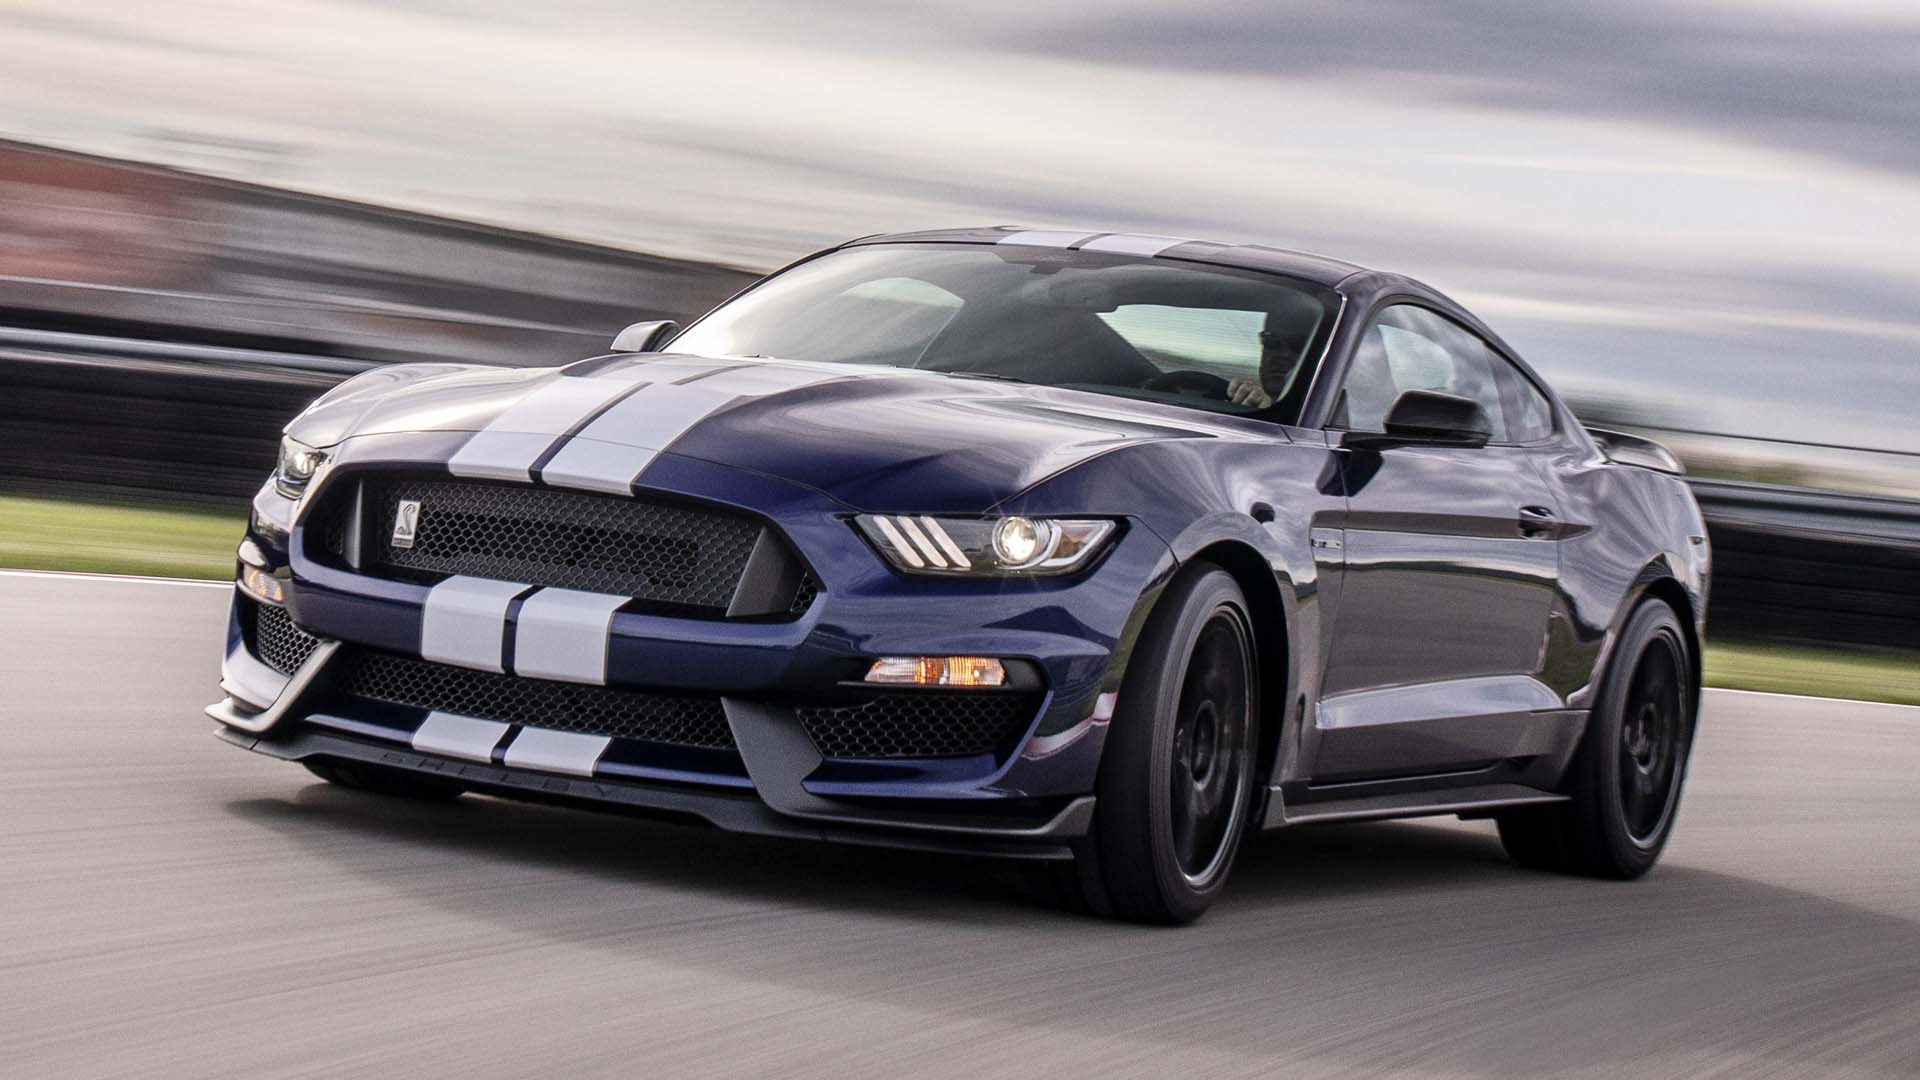 24 New 2020 Ford Mustang Shelby Gt 350 Release